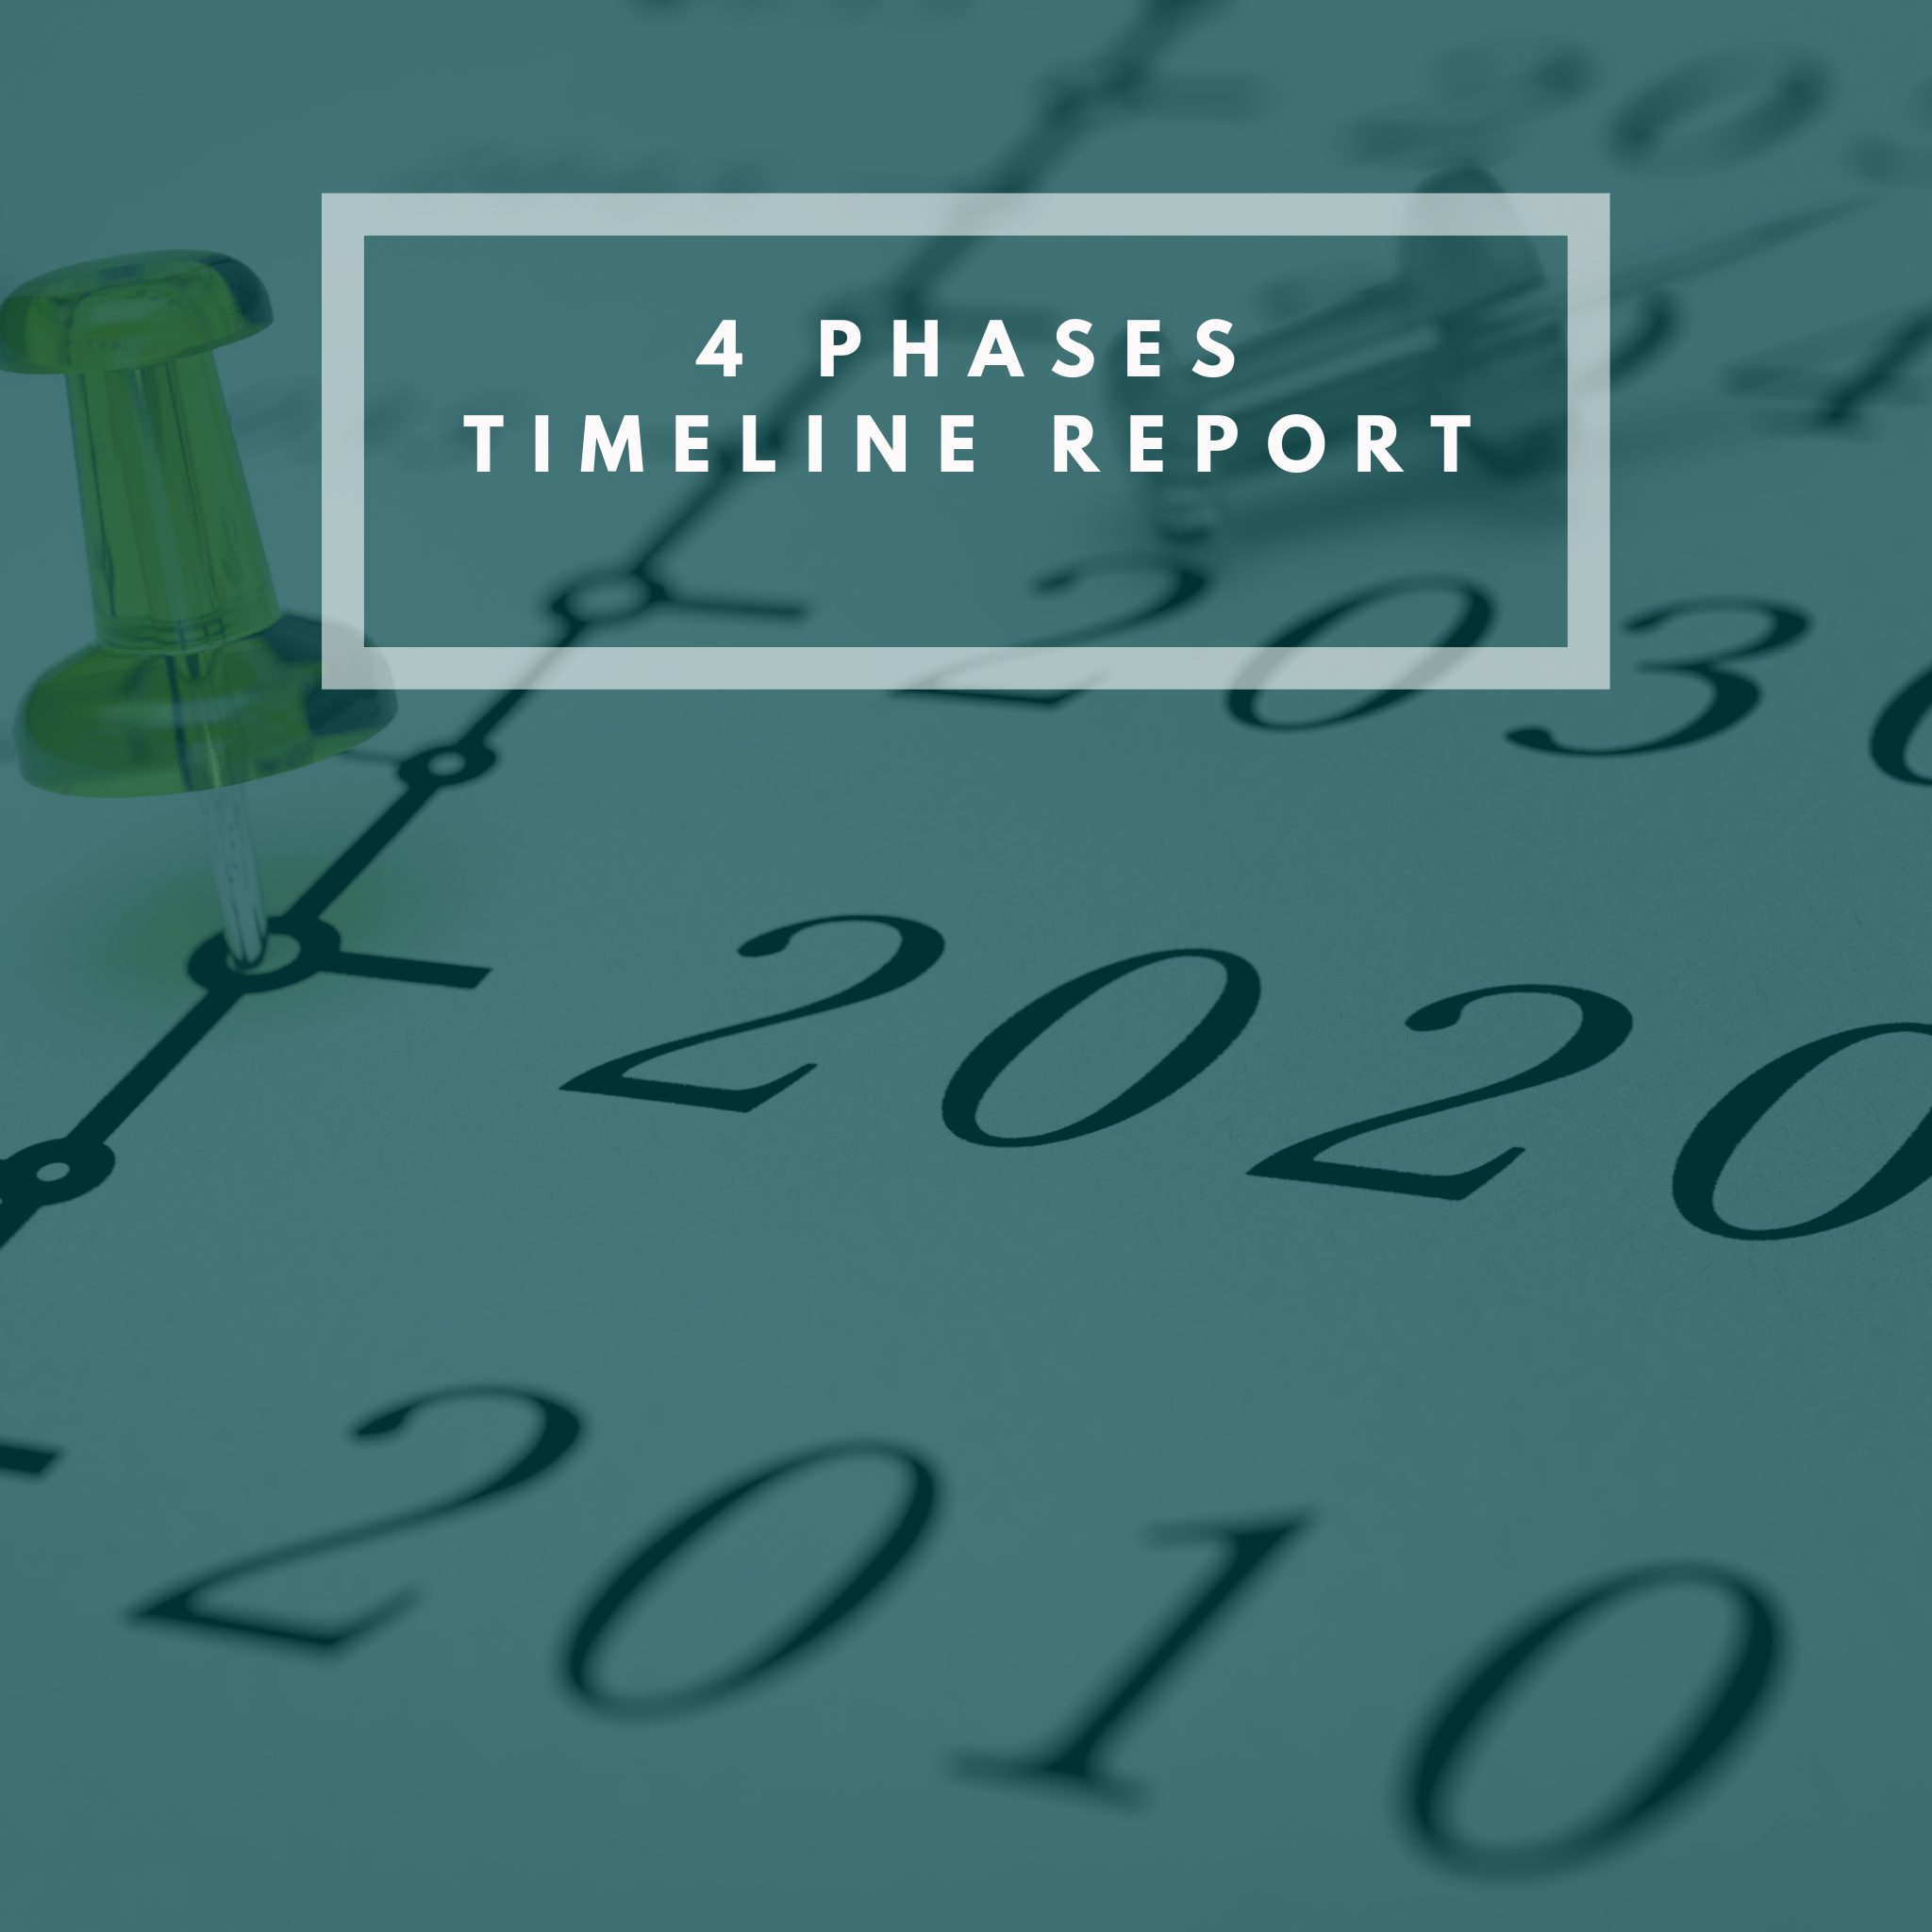 4 Phases TimeLine Report